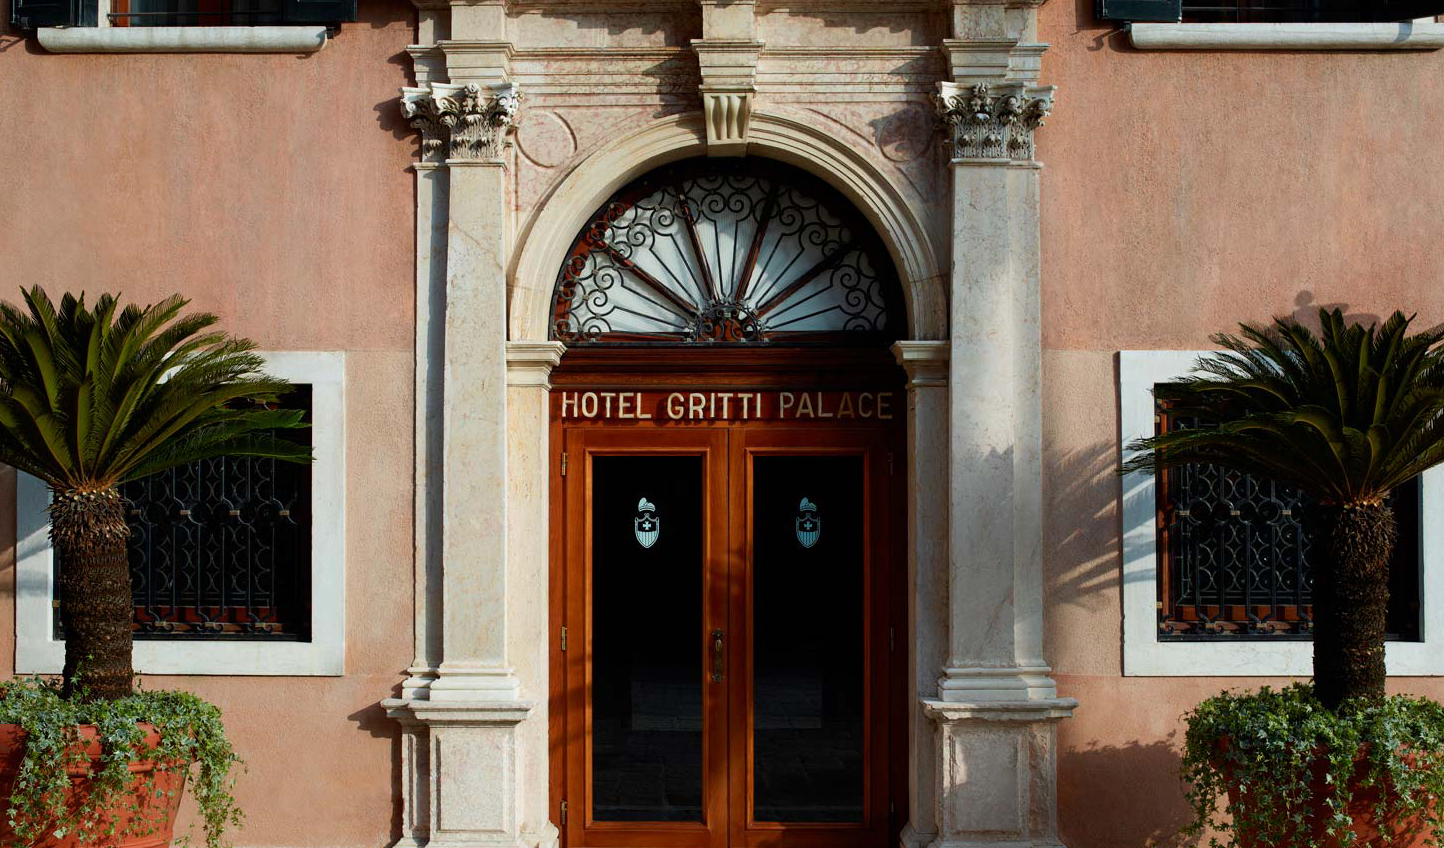 Welcome to the Hotel Gritti Palace